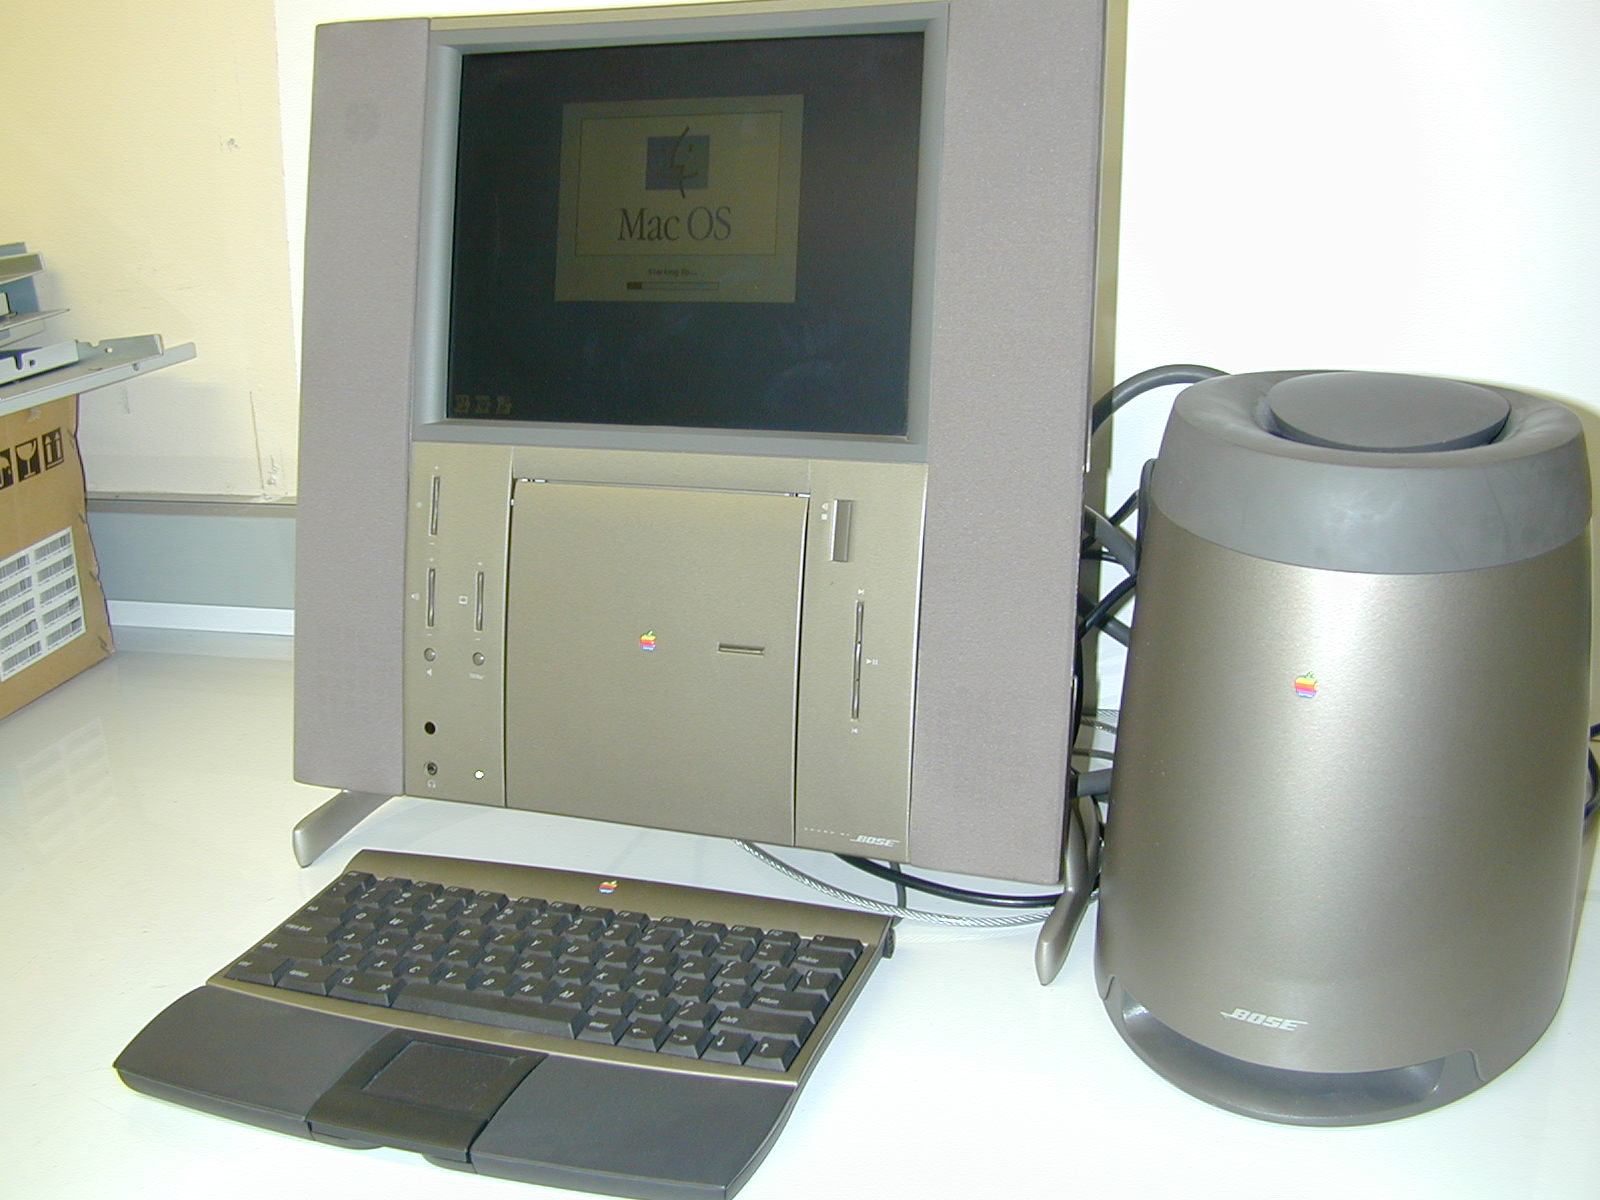 The TAM, or Twentieth Anniversary Mac